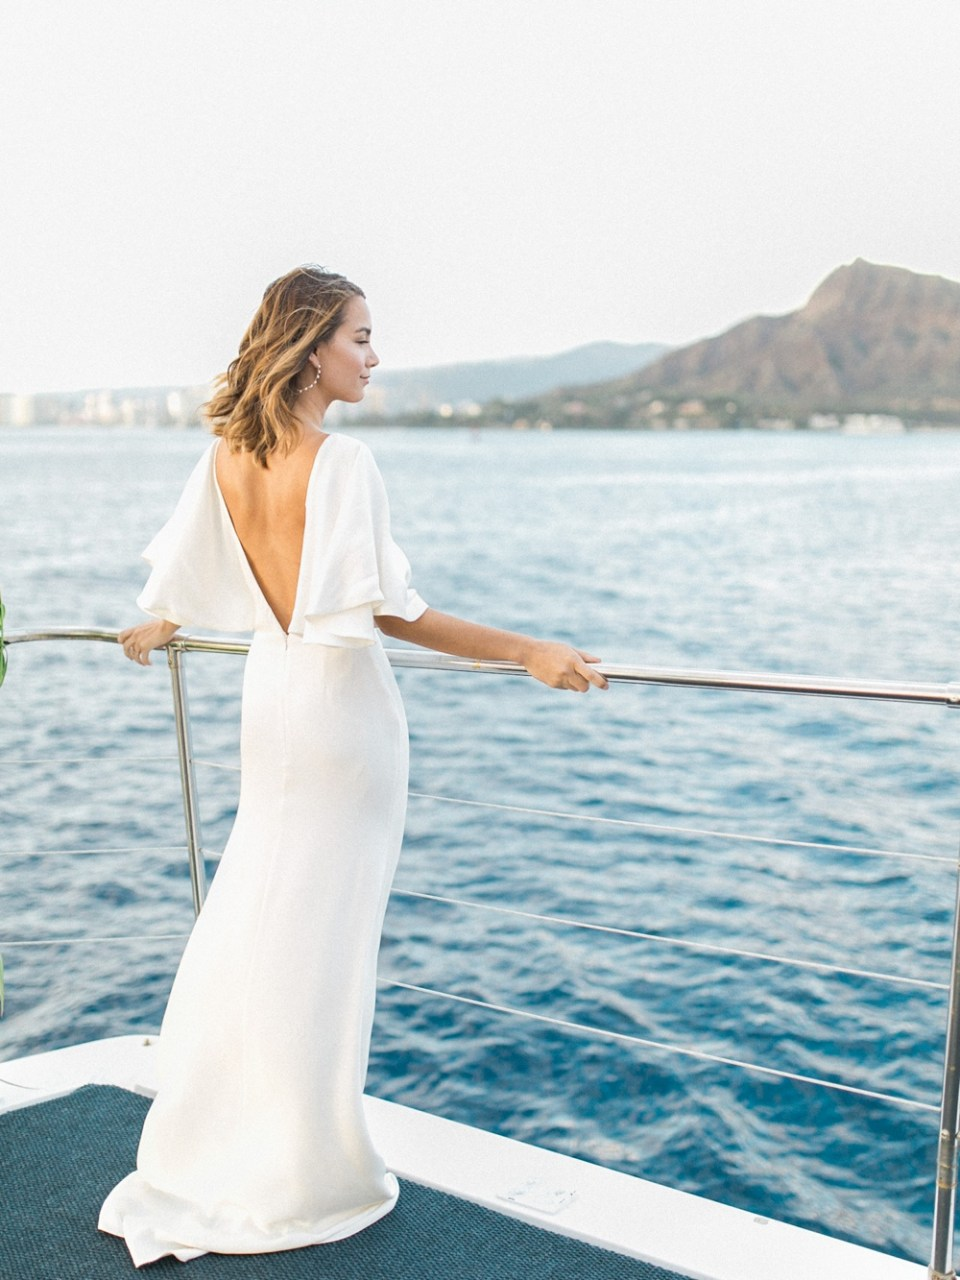 Woman taking in views on yacht in Sarah Seven dress